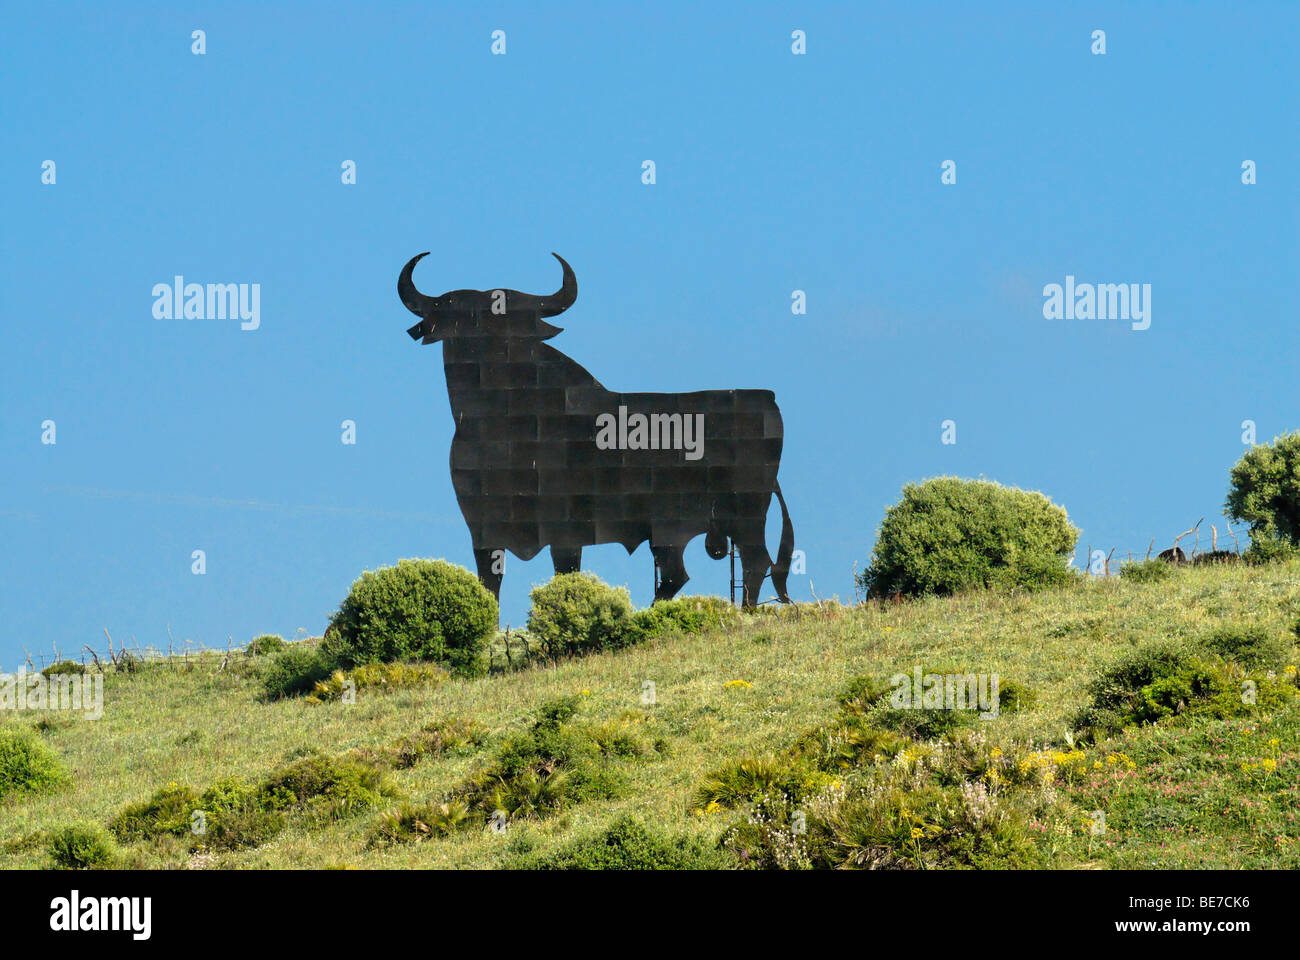 Osborne bull, Toro de Osborne, near Cadiz, Andalusia, Spain, Europe - Stock Image